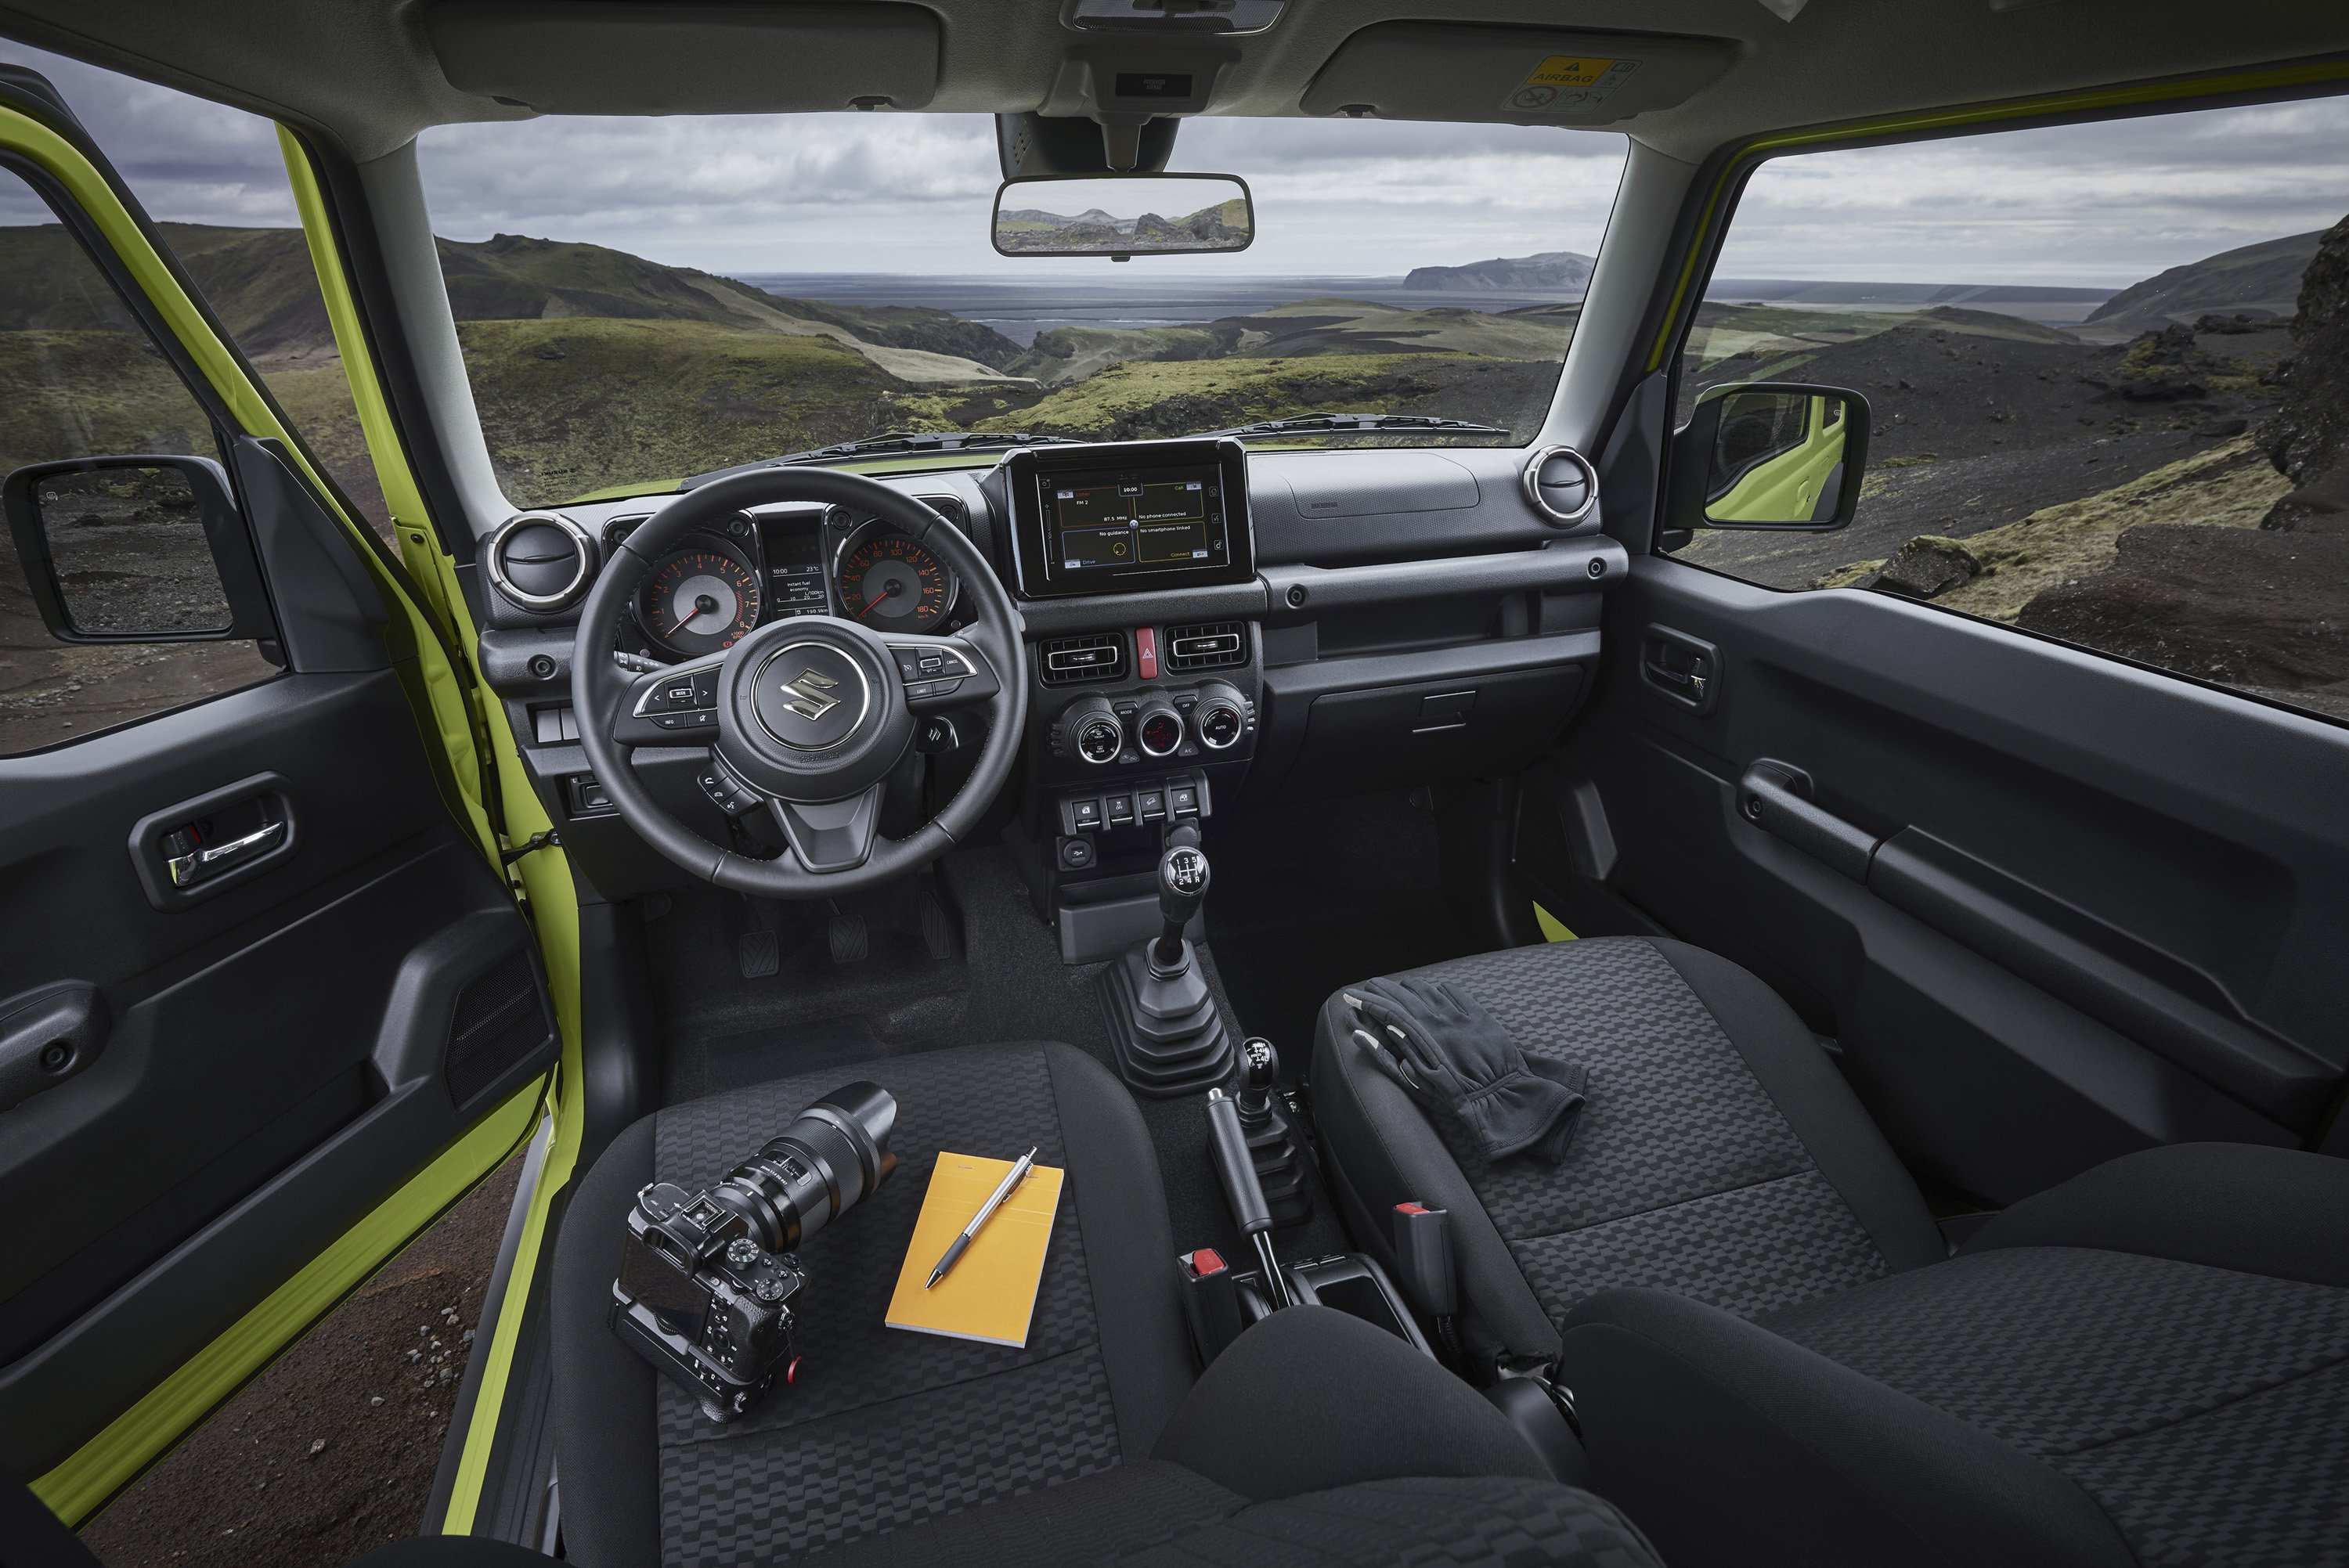 36 Great Suzuki Jimny 2019 Interior Photos for Suzuki Jimny 2019 Interior